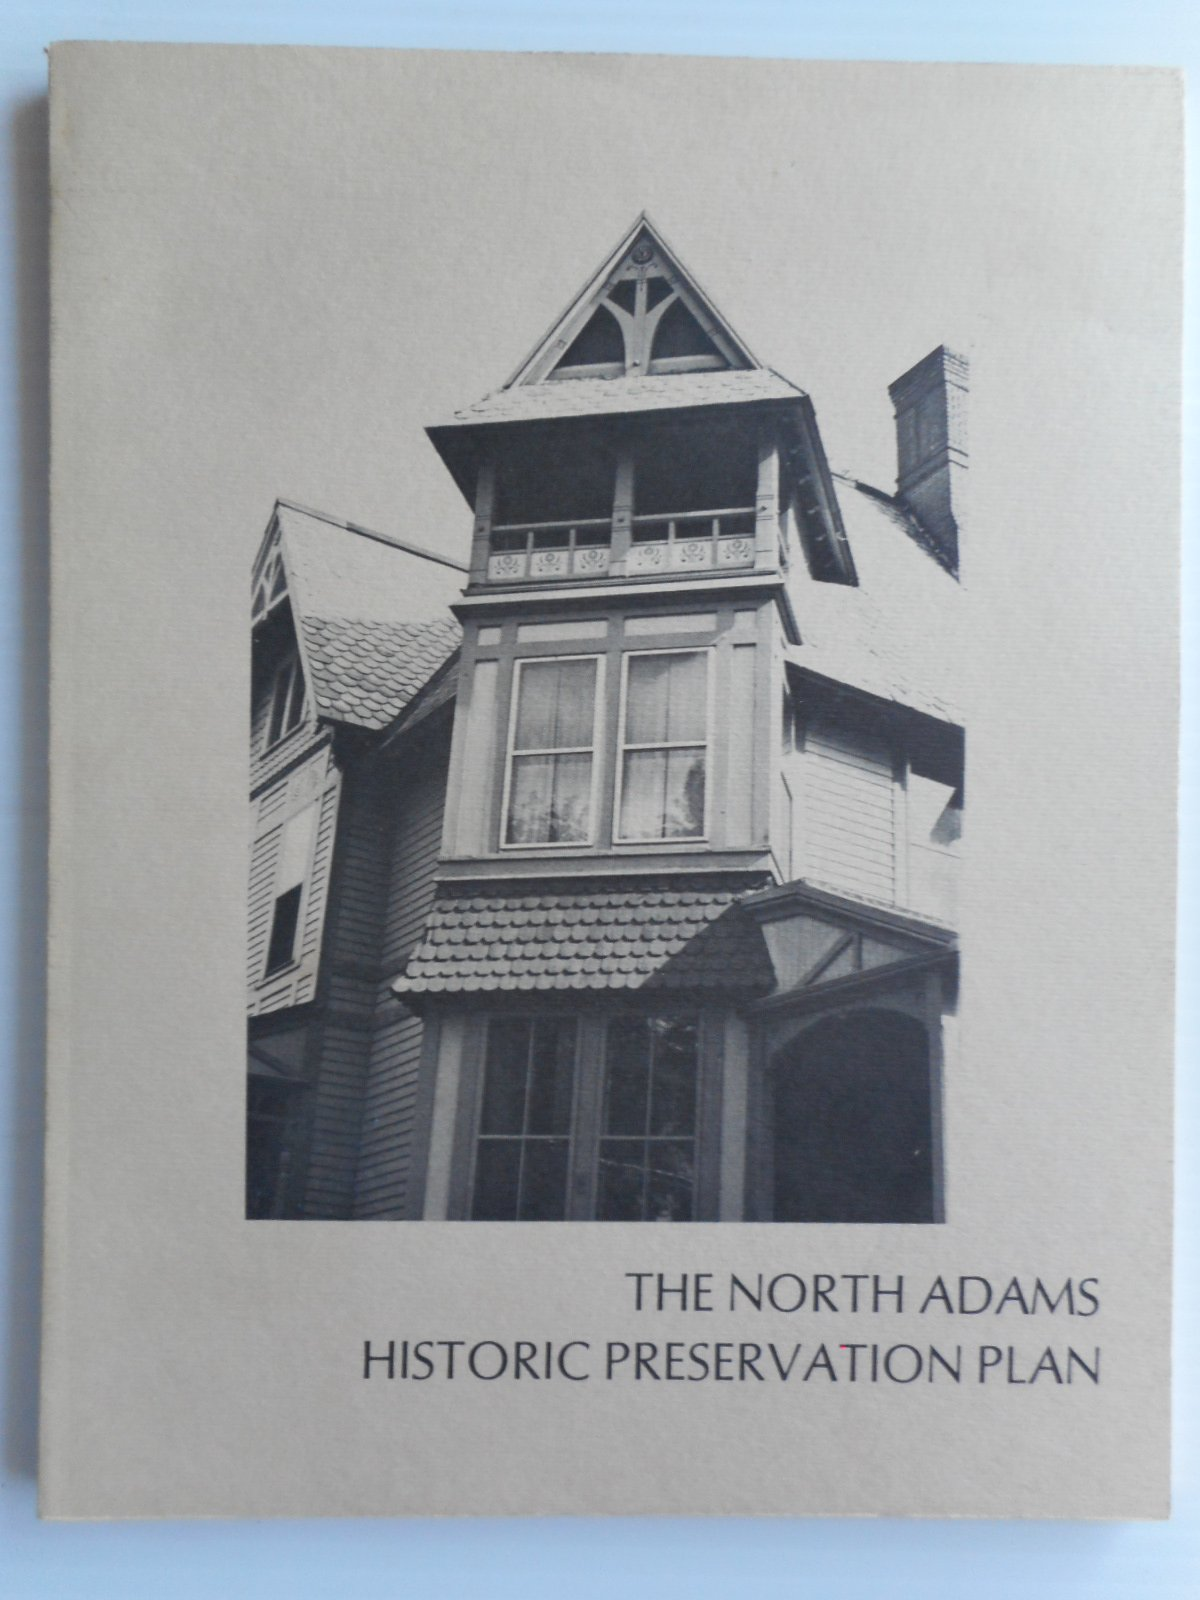 The Architectural Heritage of North Adams, Massachusetts: Part I of the North Adams Historic Preservation Plan